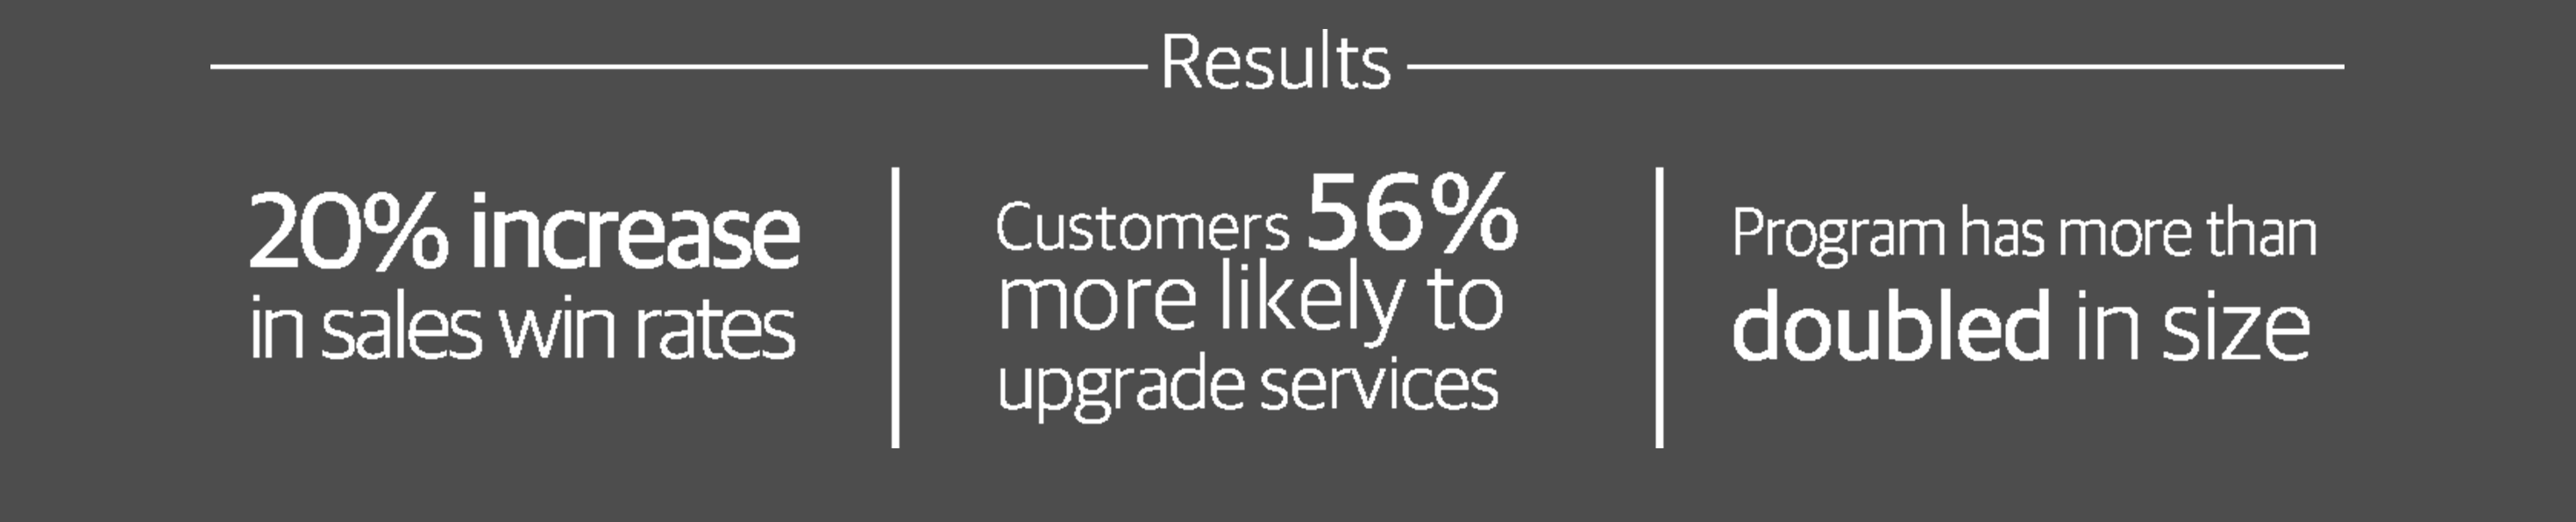 We helped our client create a new customer-retention program